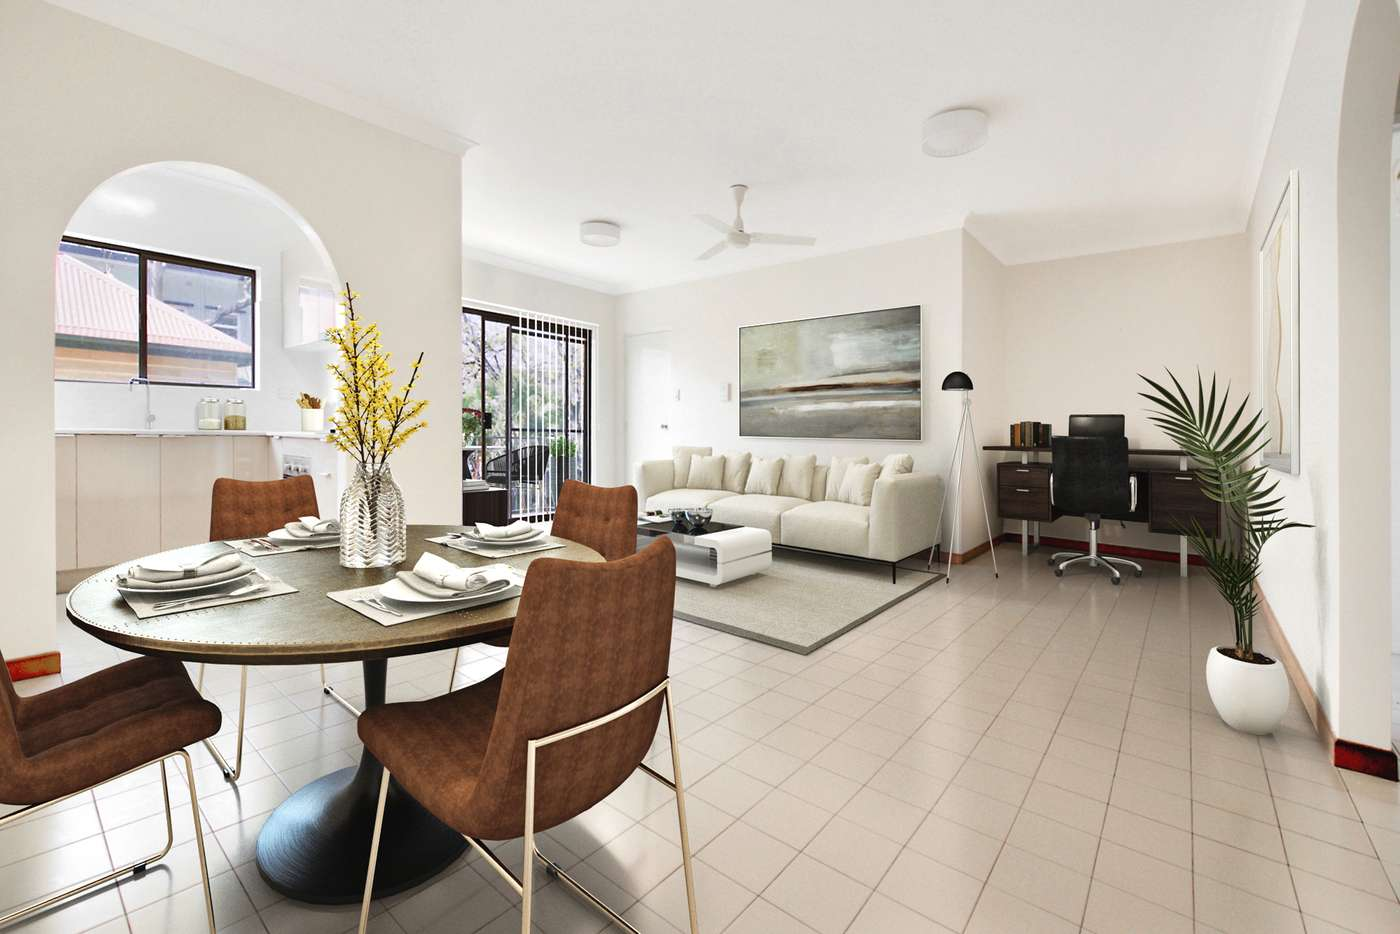 Main view of Homely apartment listing, 175 Harcourt Street, New Farm QLD 4005